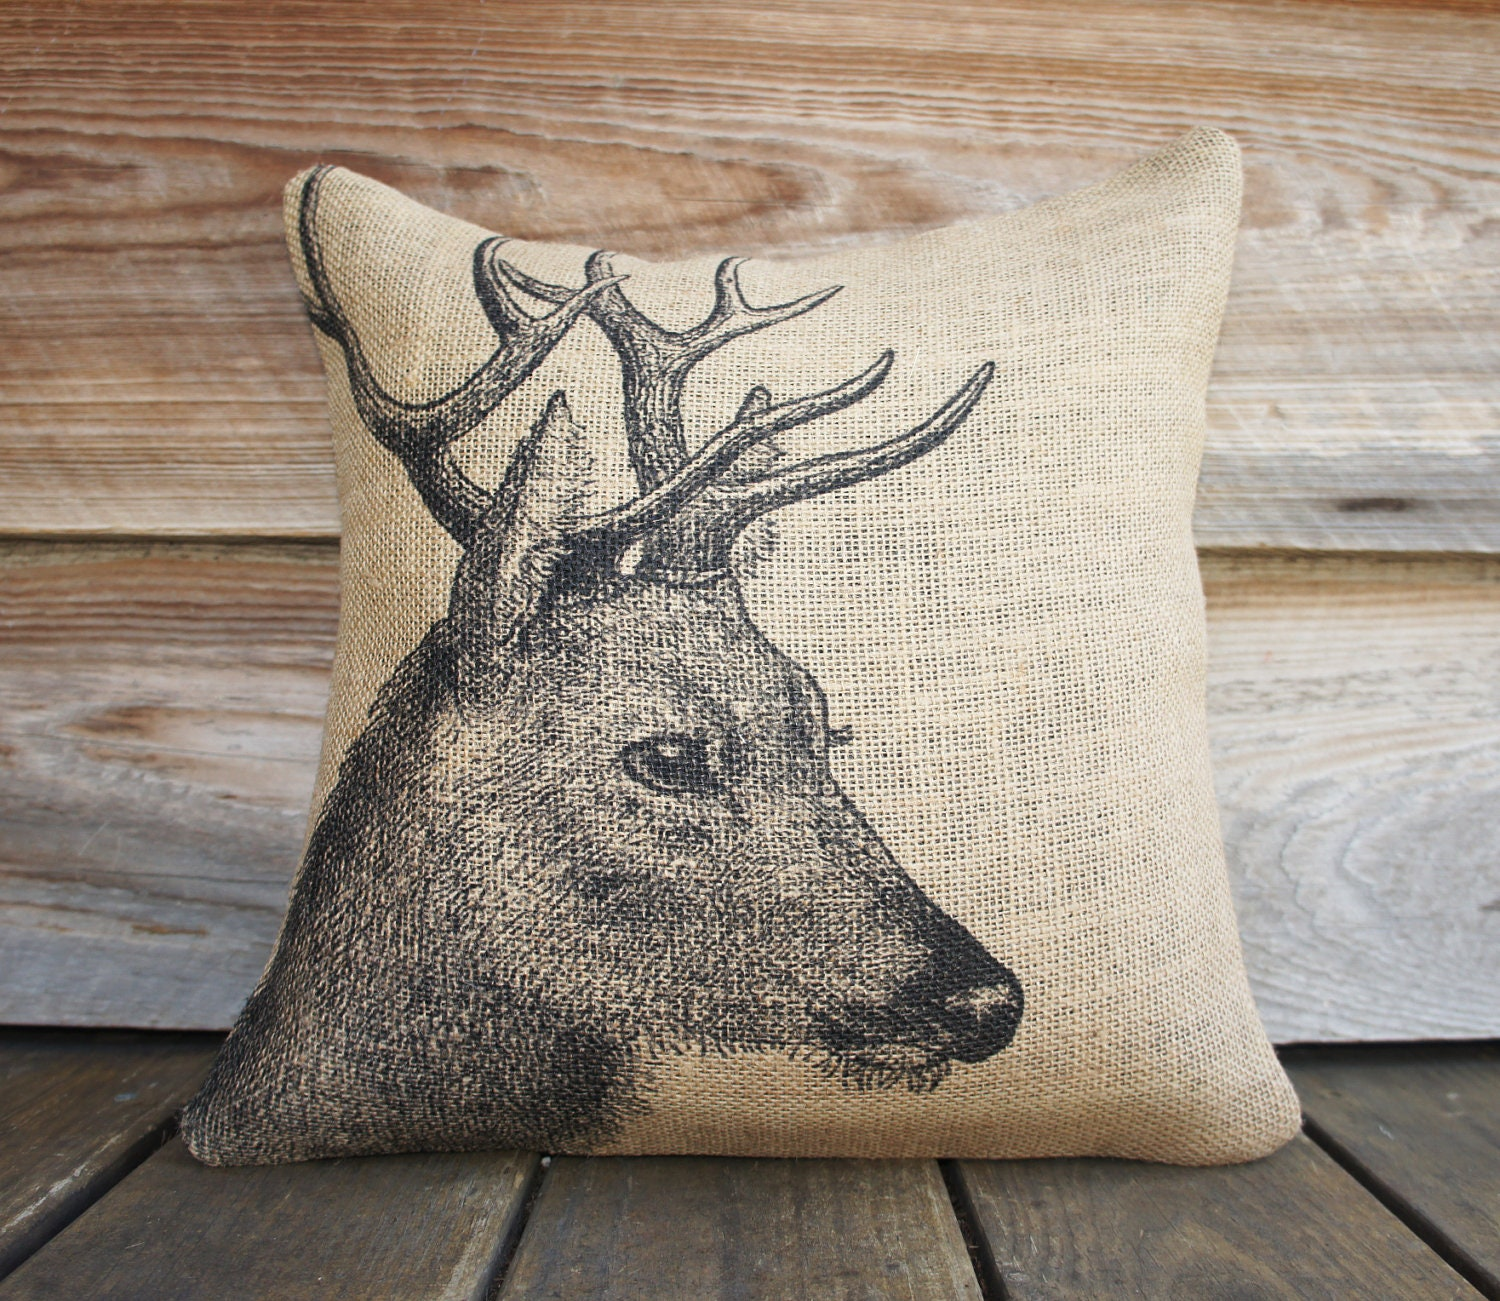 Throw Pillows Deer : Deer Pillow, Burlap Pillow, Cushion, Rustic, Decorative Throw Pillow, Log Cabin, Woodlands ...